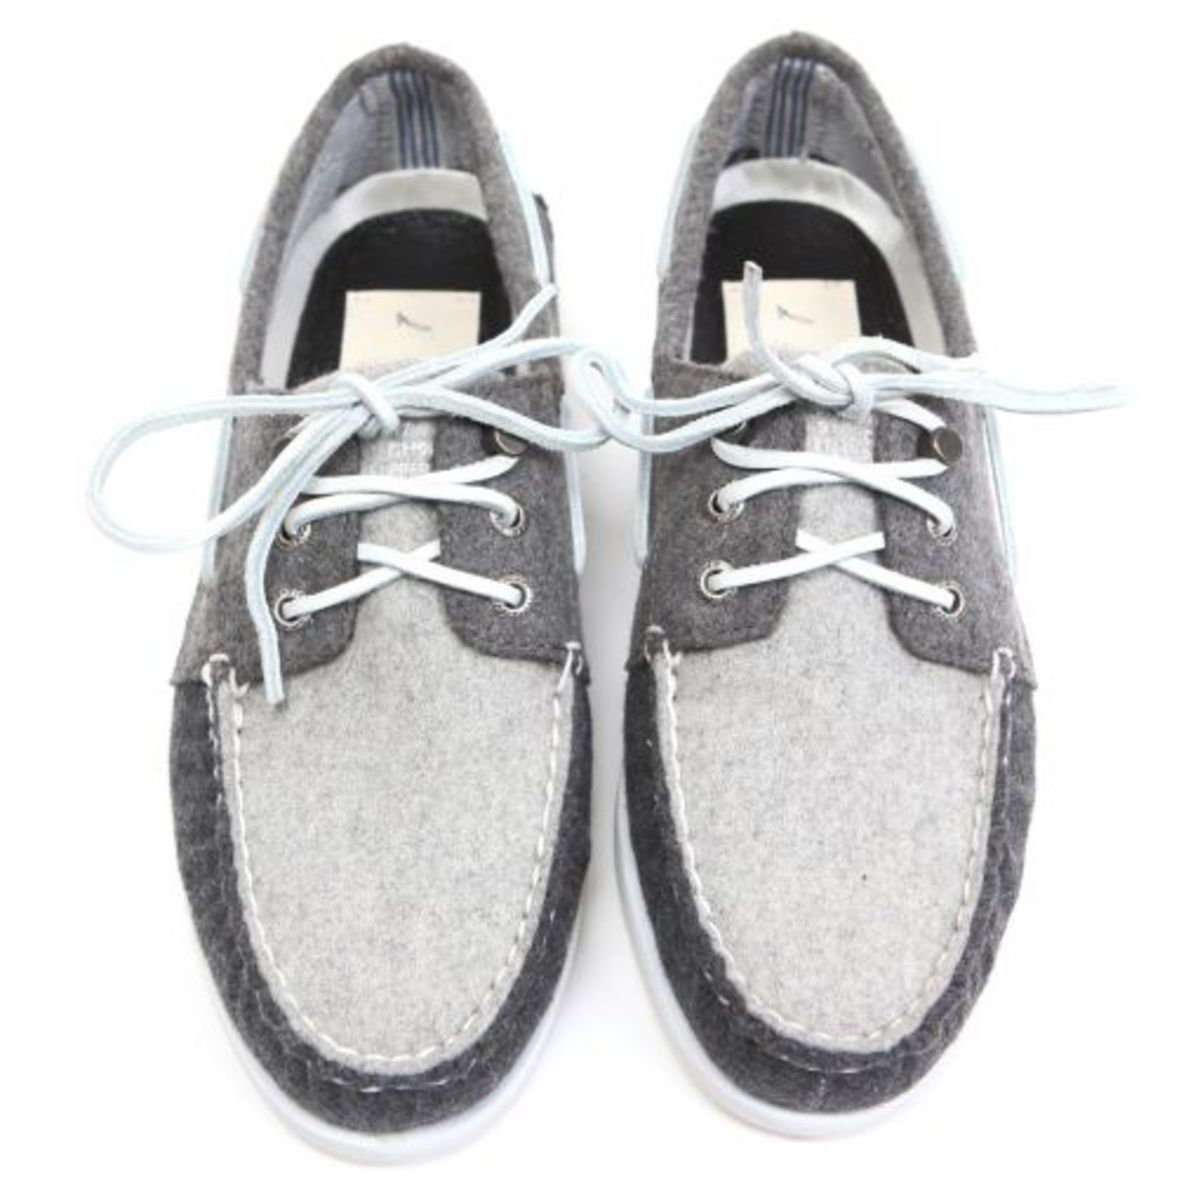 band_of_outsider_sperry_topsider_2